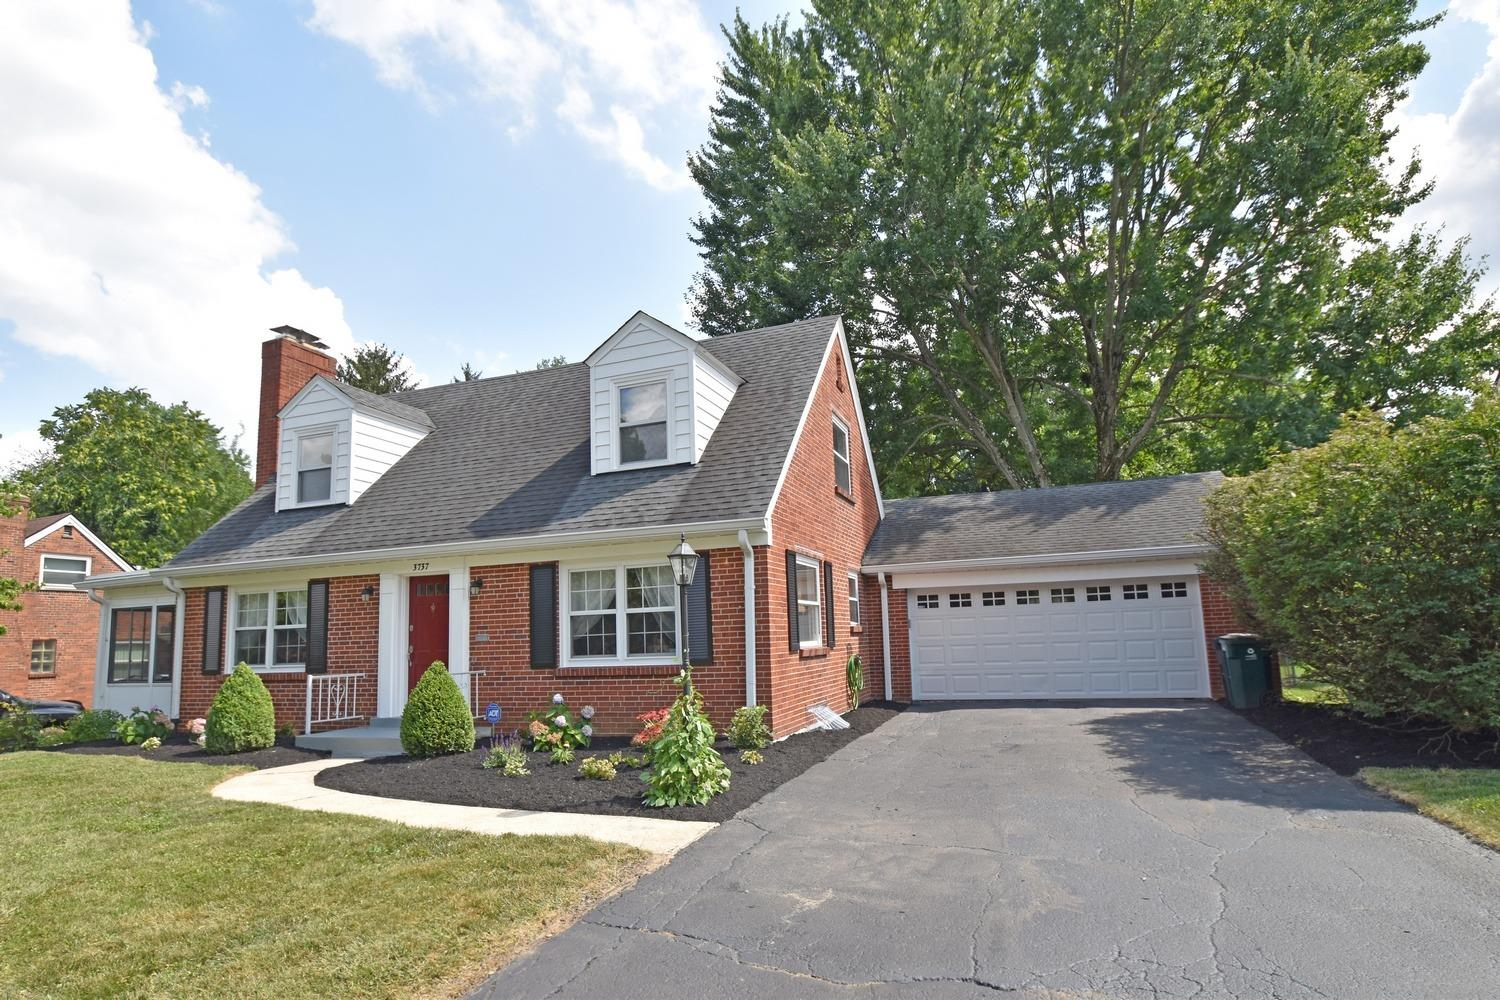 3737 Congreve Ave Kennedy Hts., OH